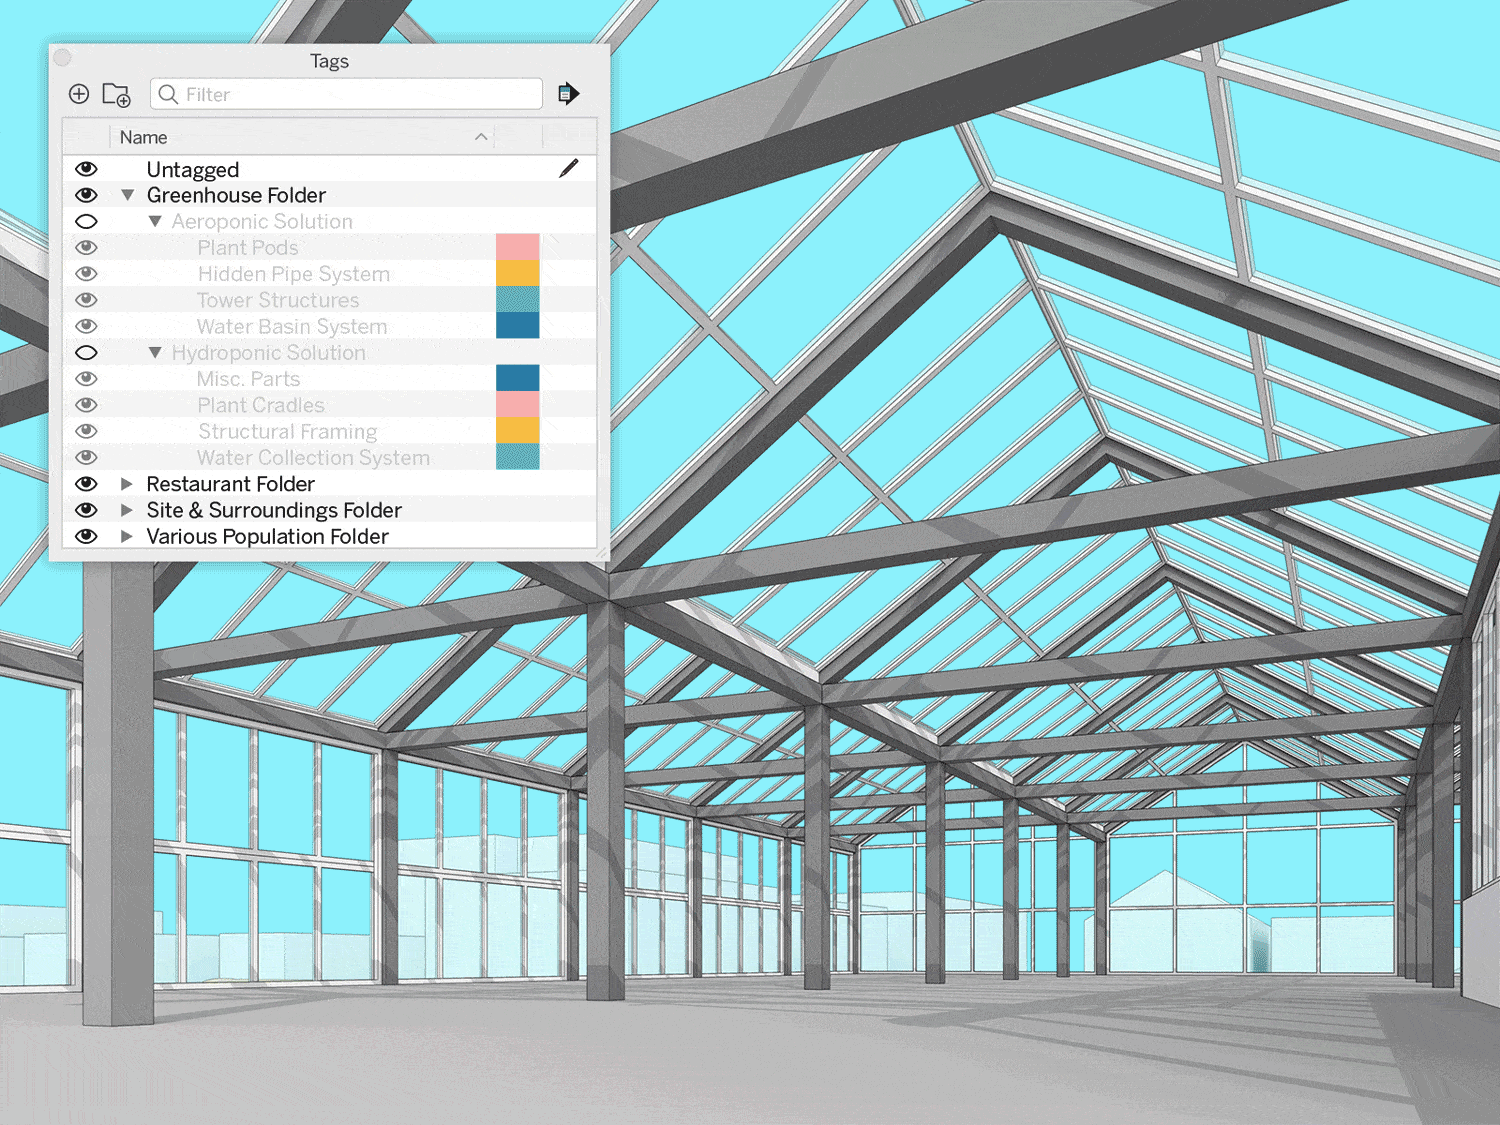 SketchUp's organization tools help keep your complex projects clean. With Tags, you can access components of your model quickly and control visibility in bulk.